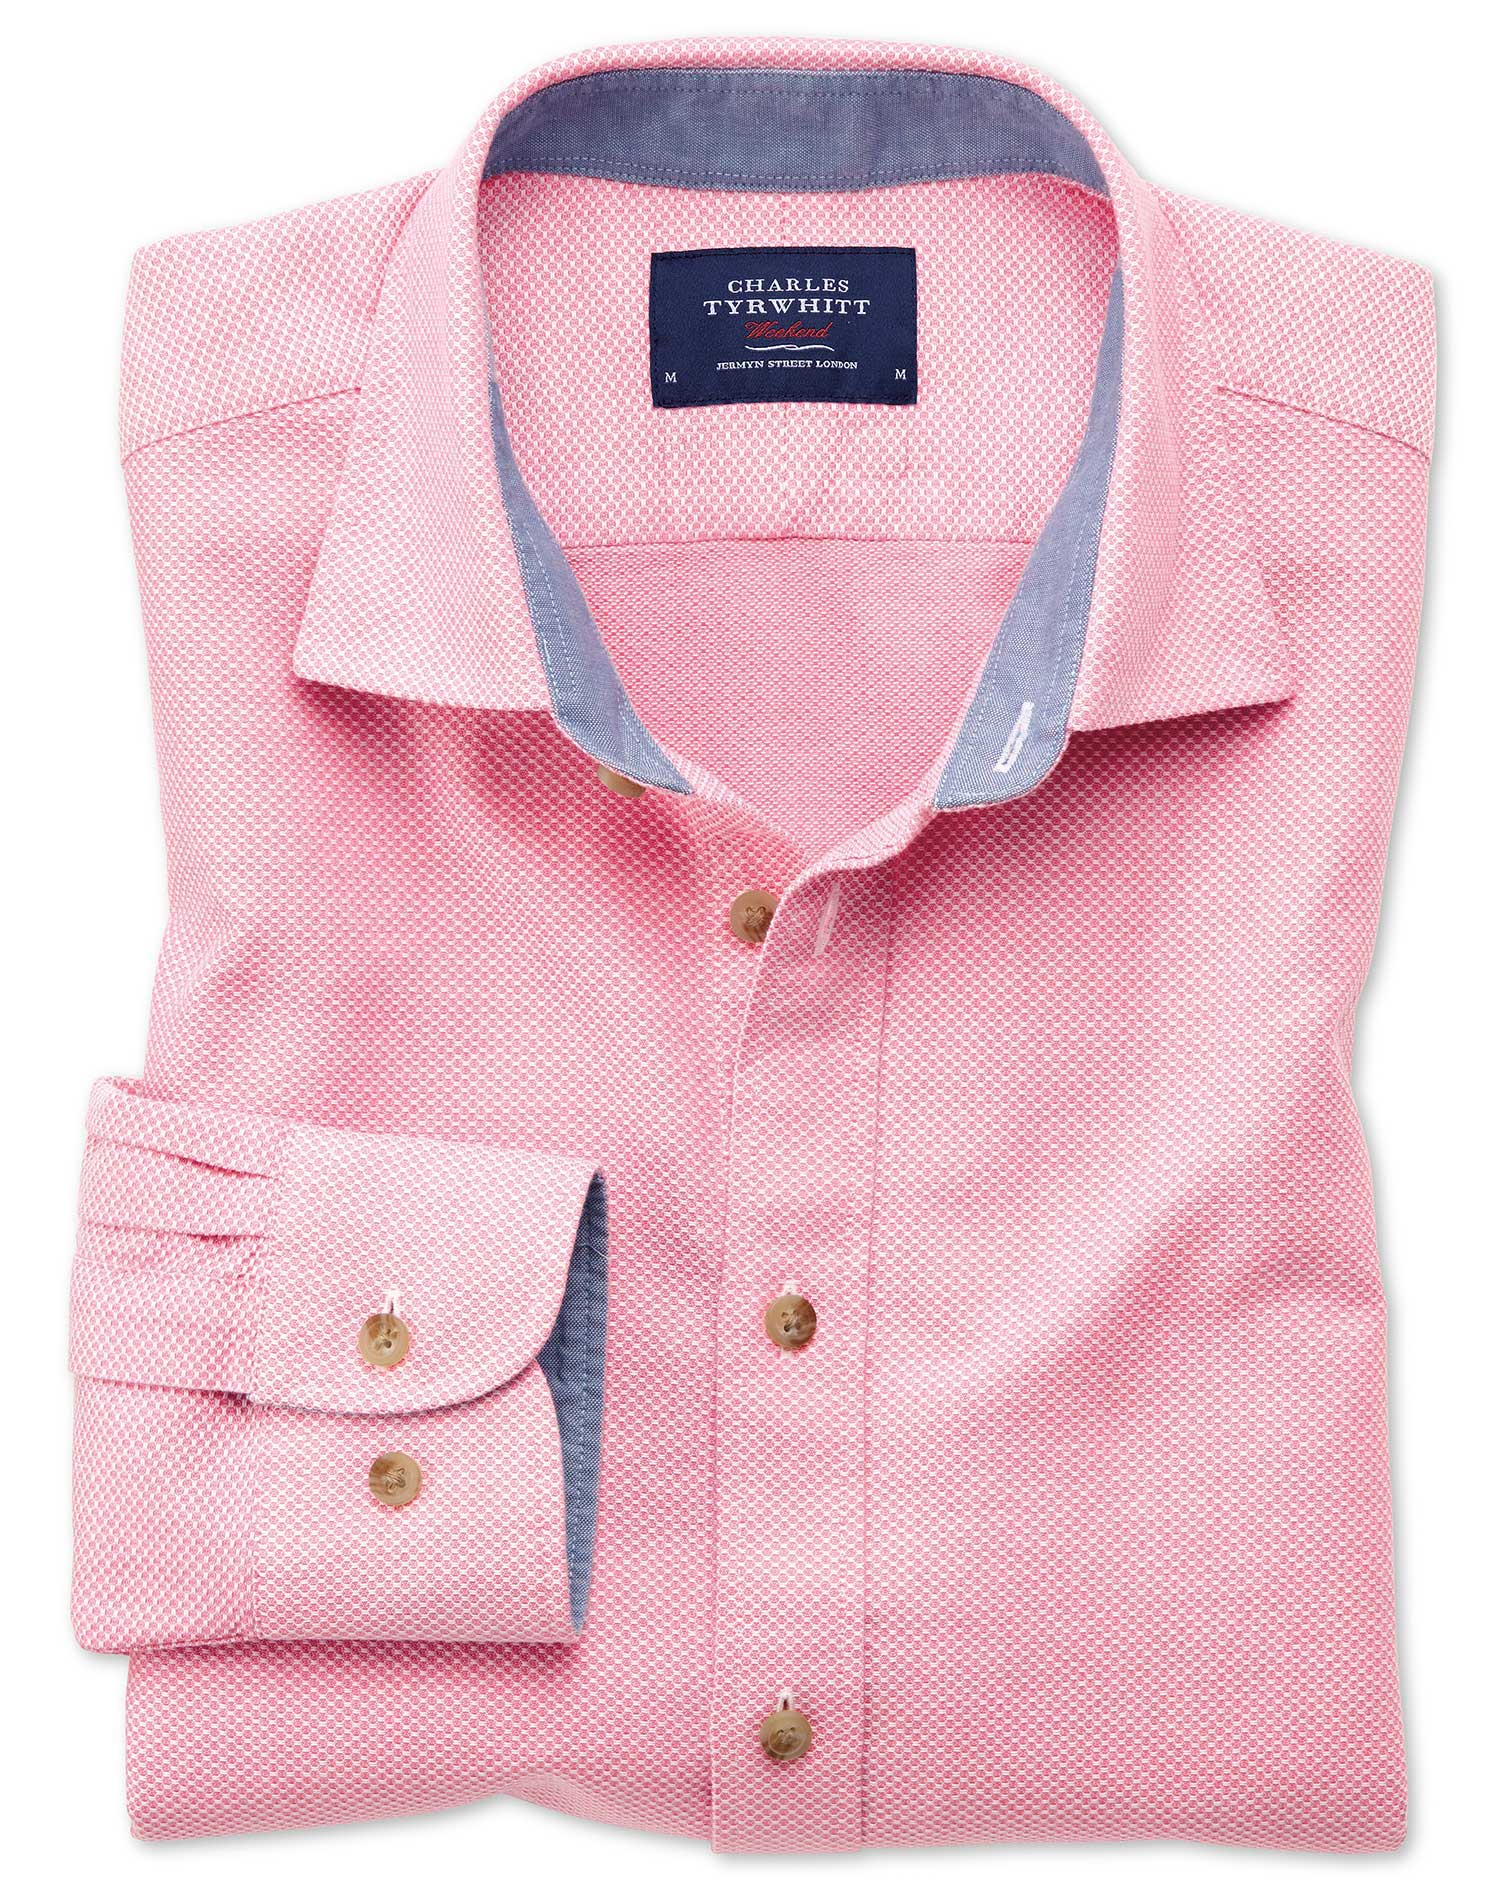 Classic Fit Washed Textured Pink Cotton Shirt Single Cuff Size XL by Charles Tyrwhitt